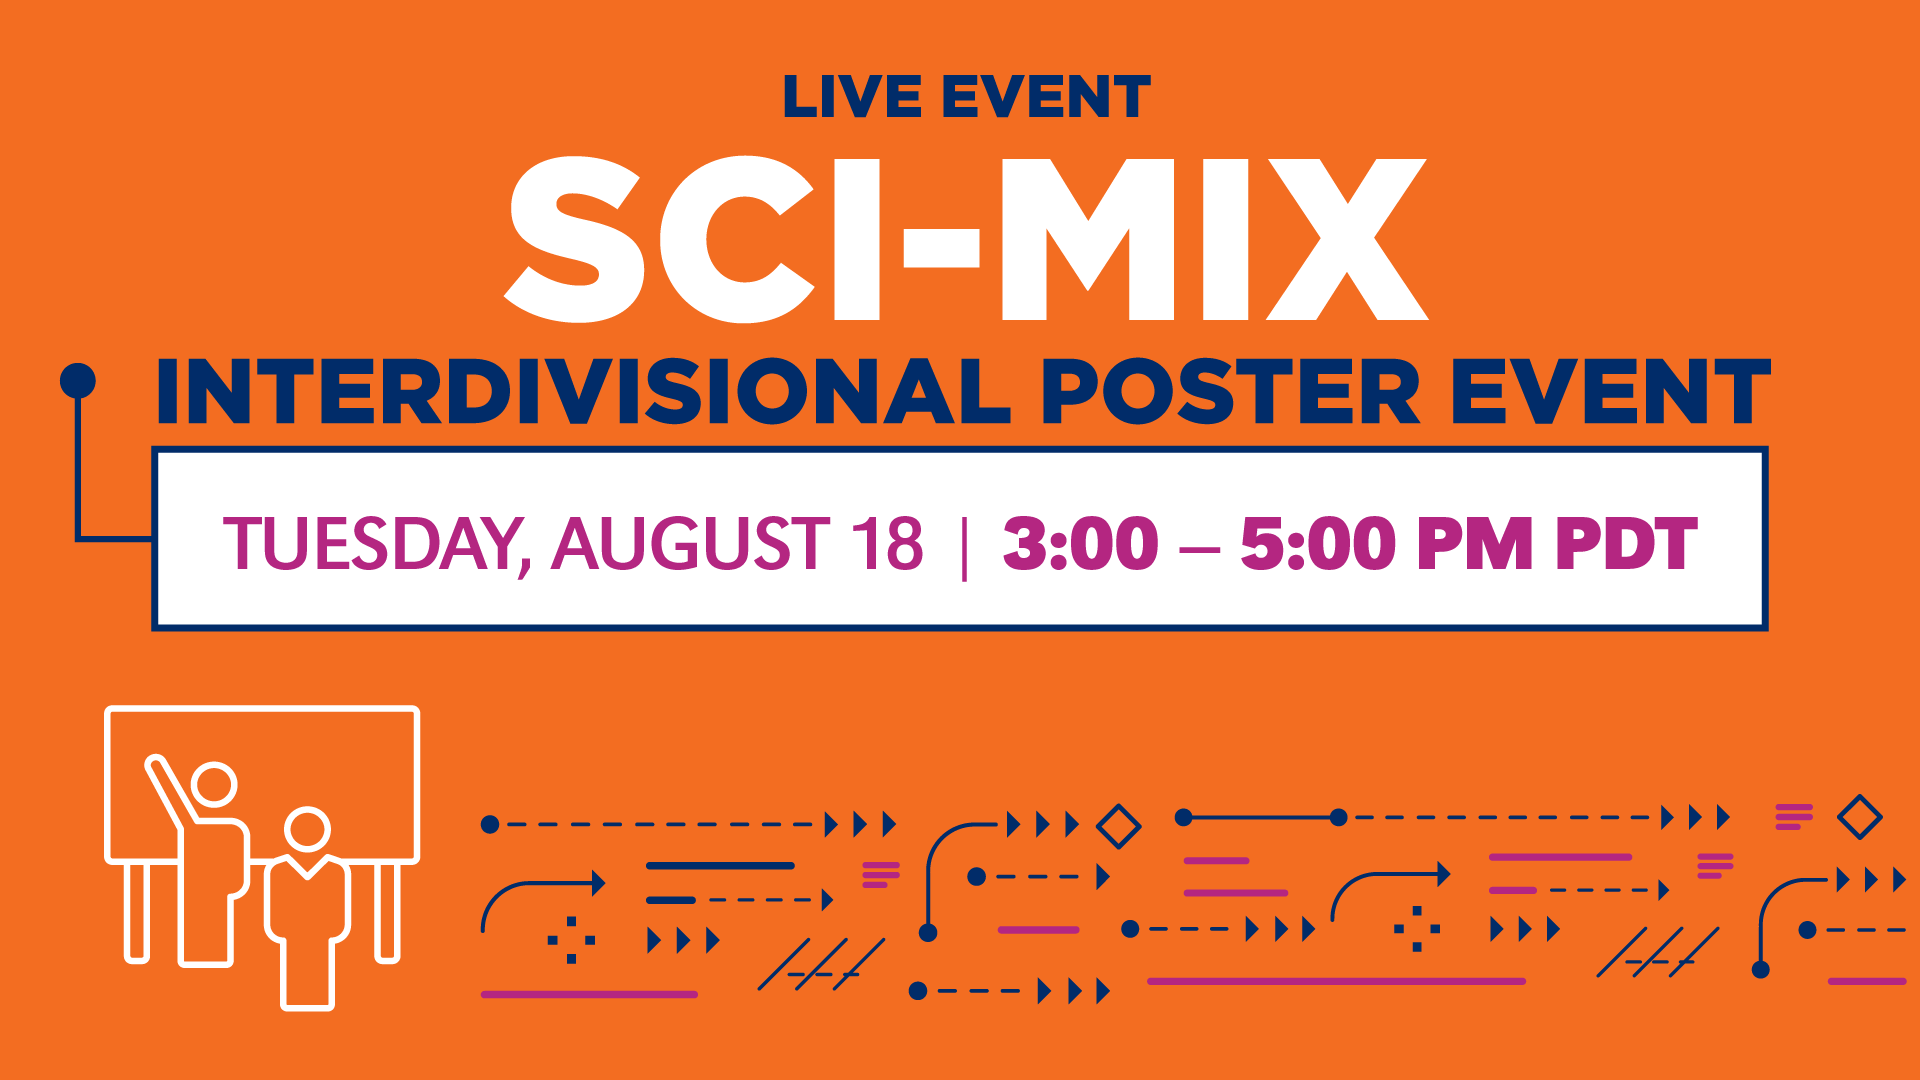 This live event, Sci-Mix Interdivisional Poster Event, has its own sign.